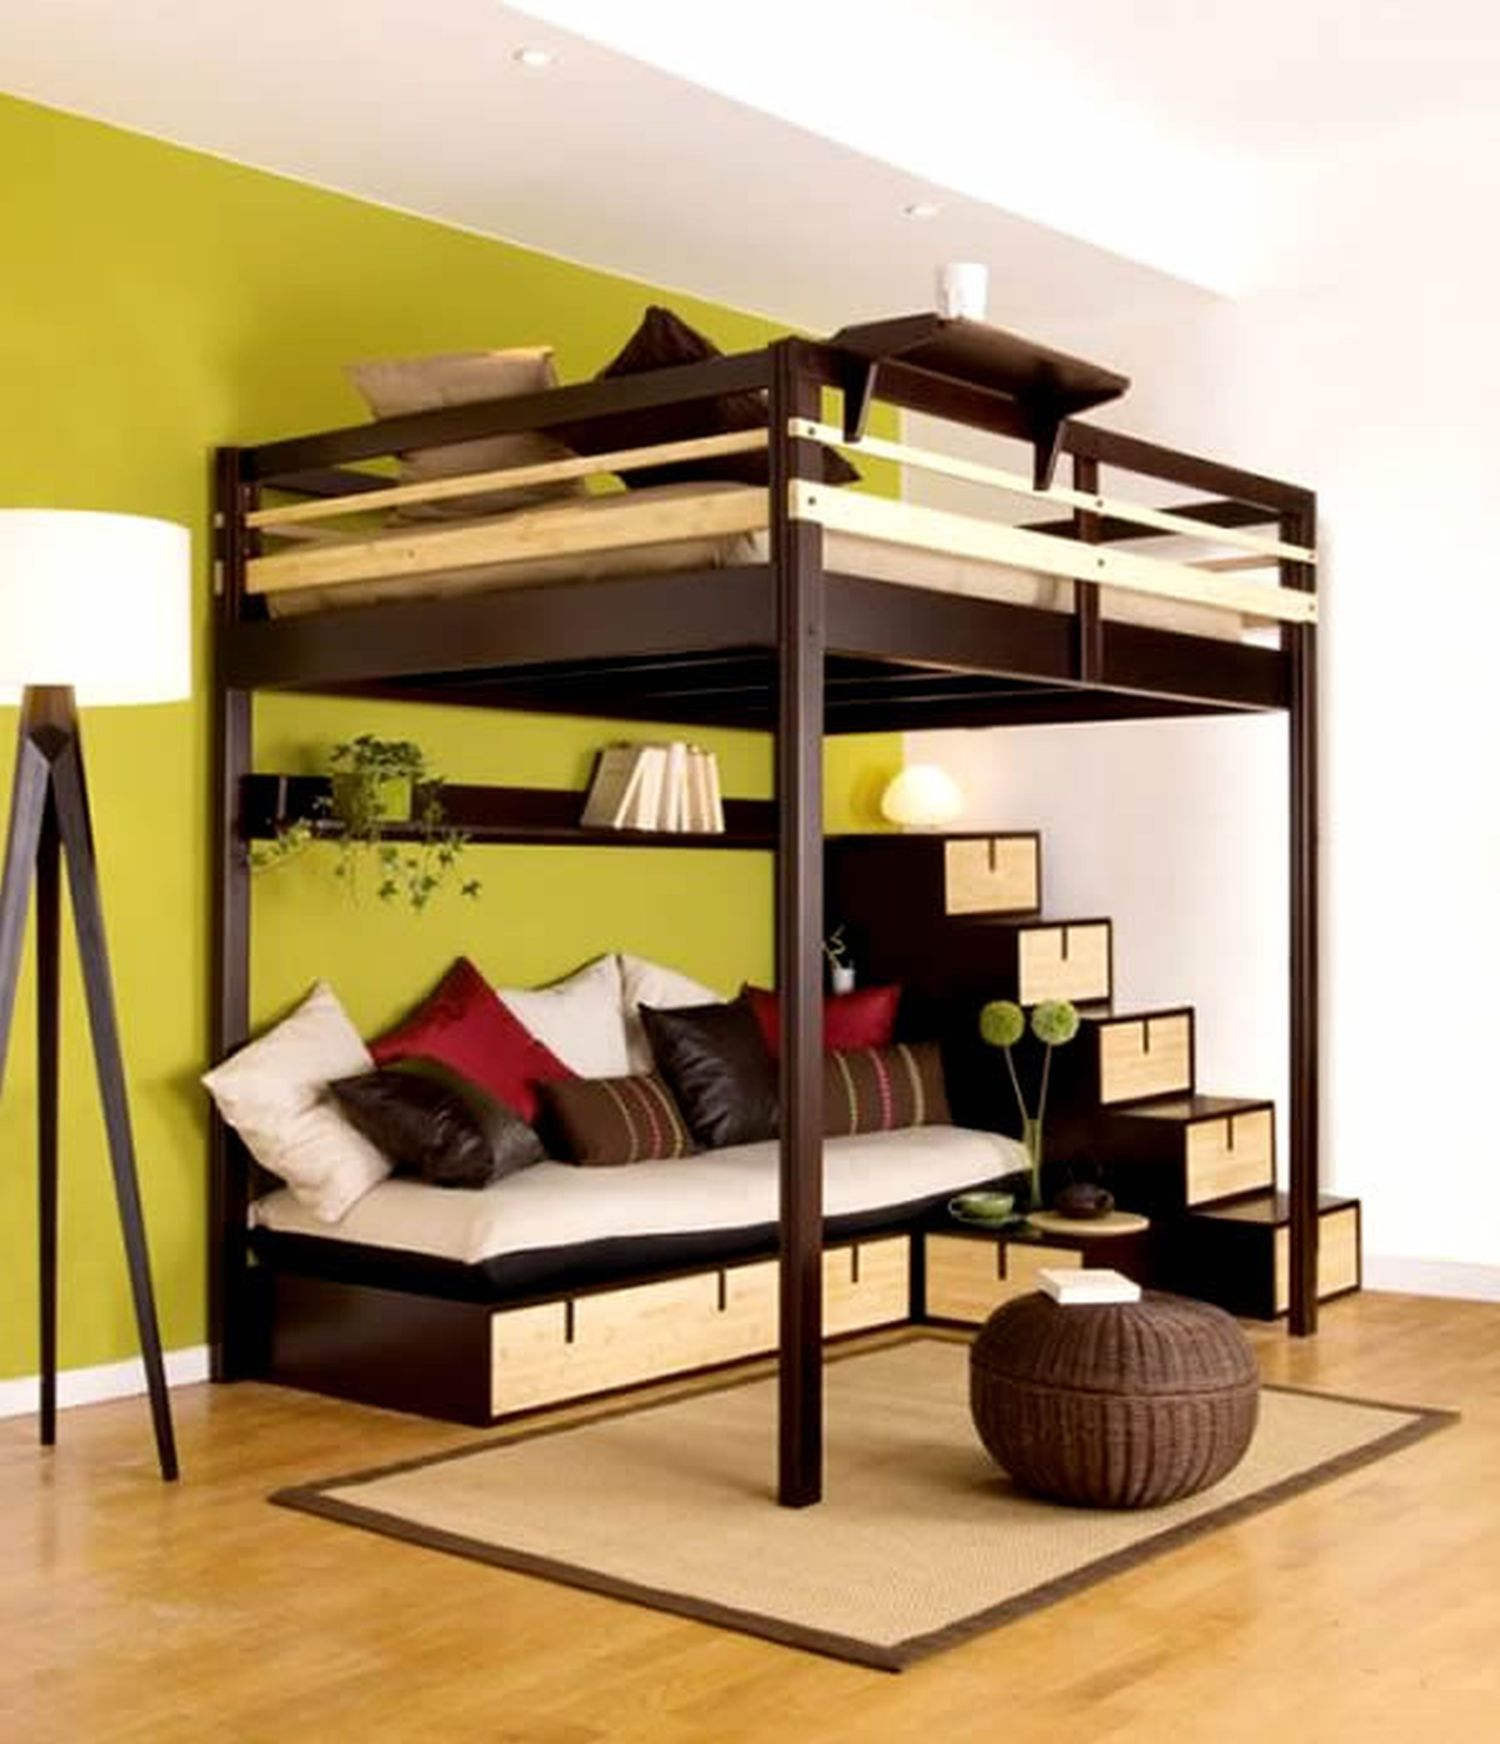 5 wonderful ideas of triple bunk beds for your kids on wonderful ideas of bunk beds for your kids bedroom id=78131